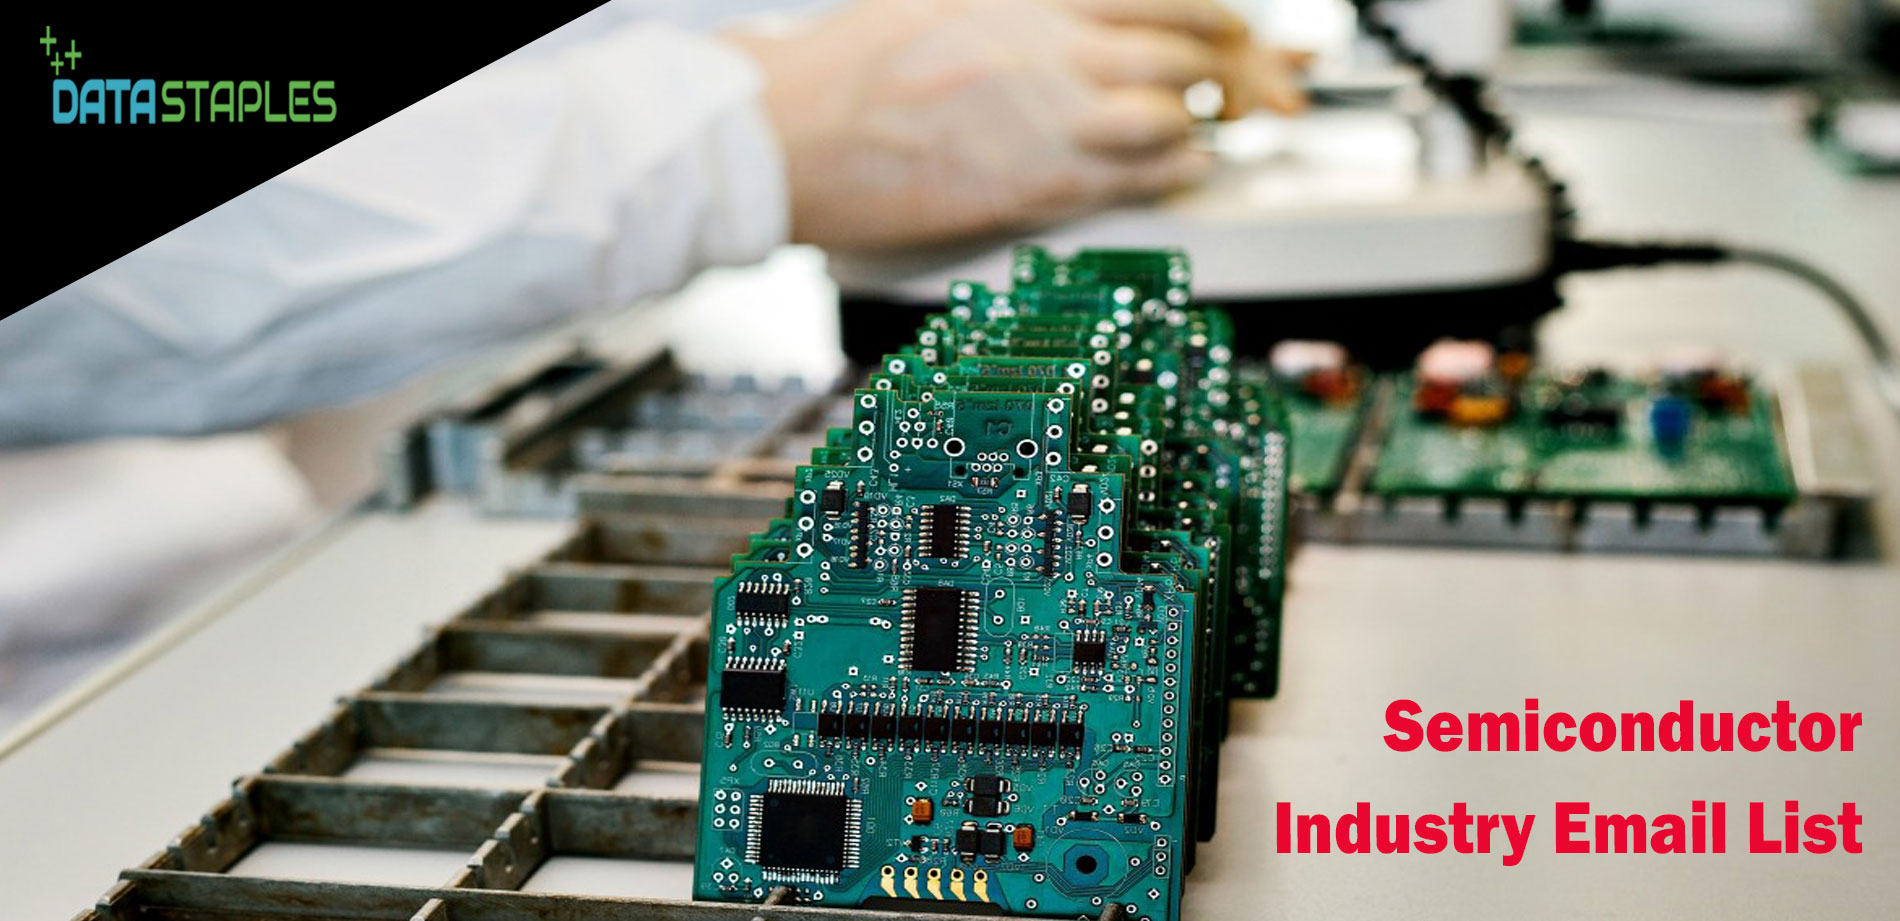 Semiconductor Industry Email List   DataStaples